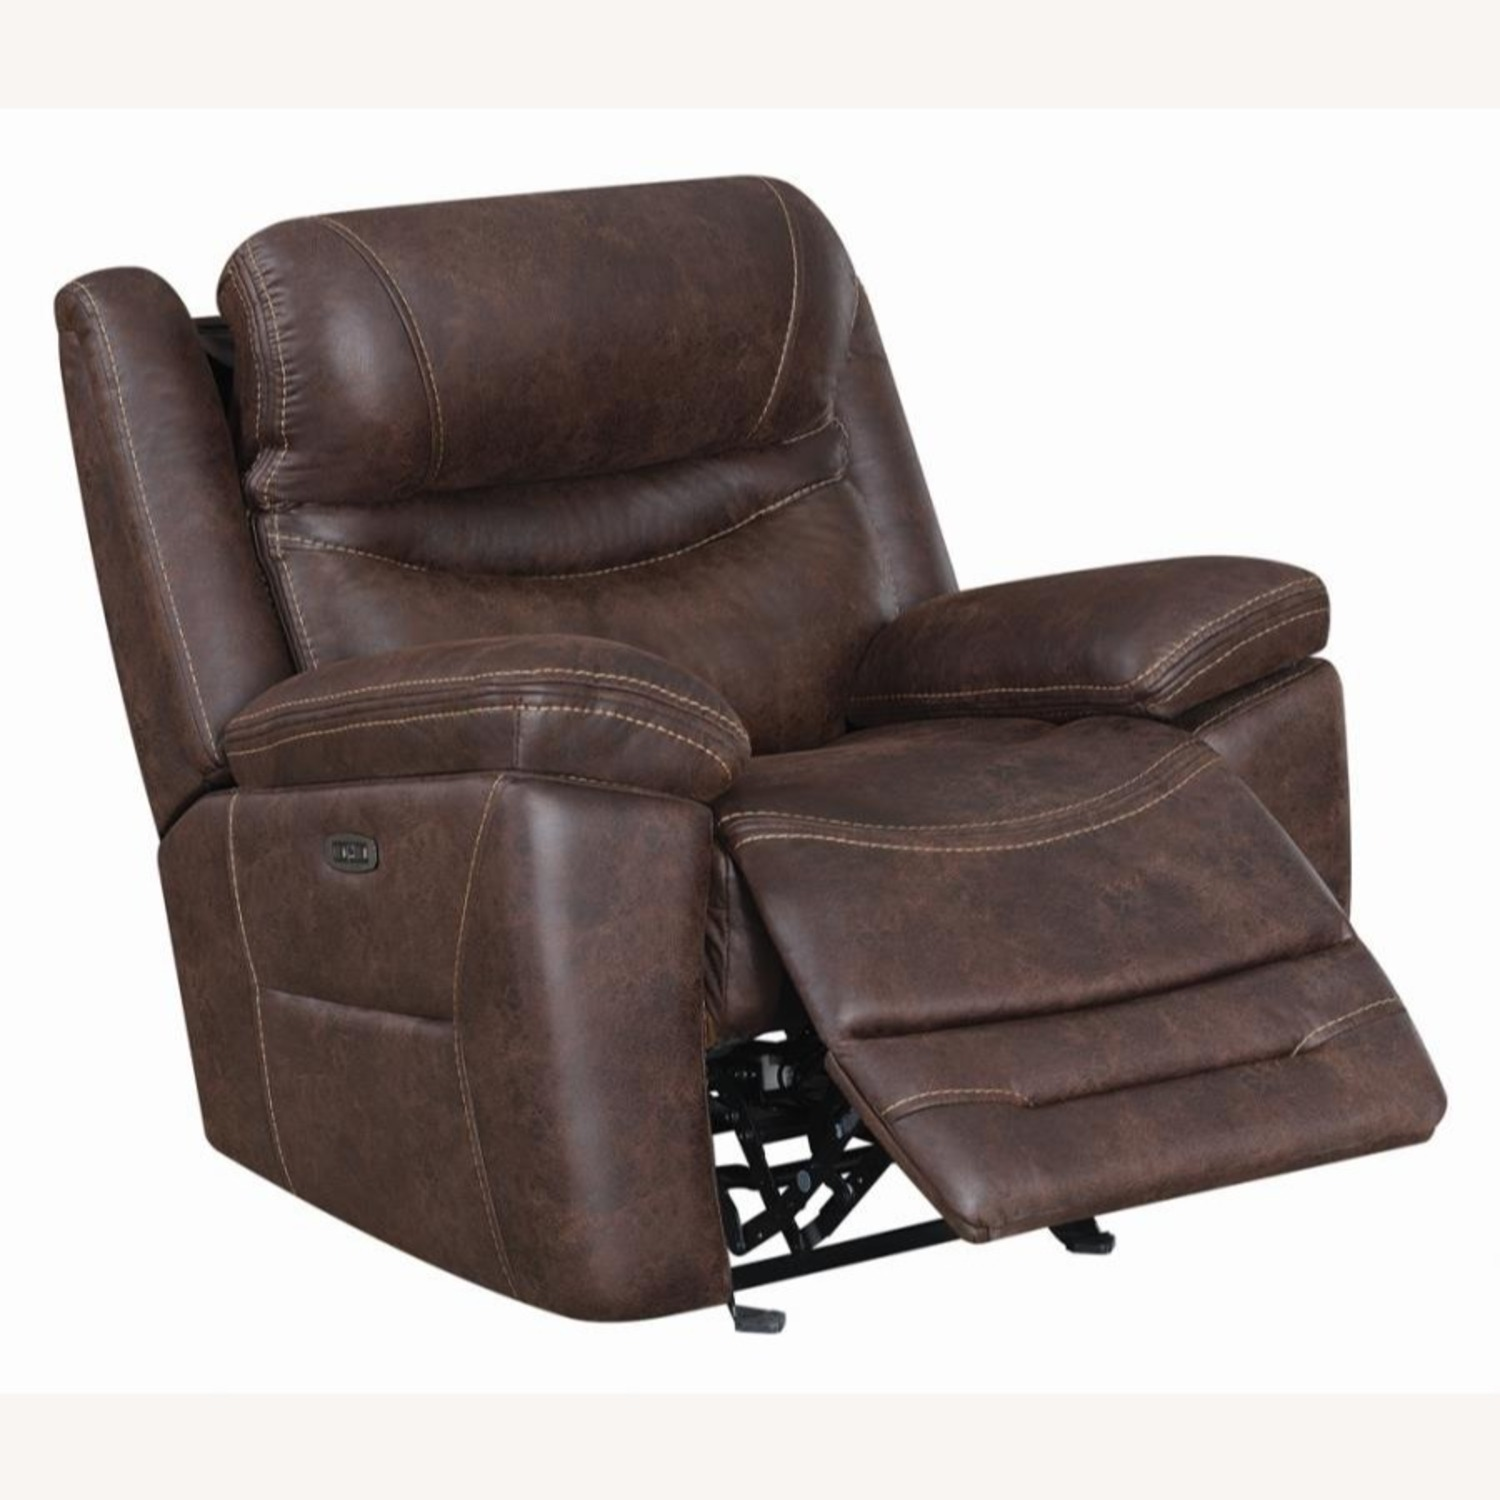 Power Glider Recliner In Chocolate Faux Upholstery - image-1